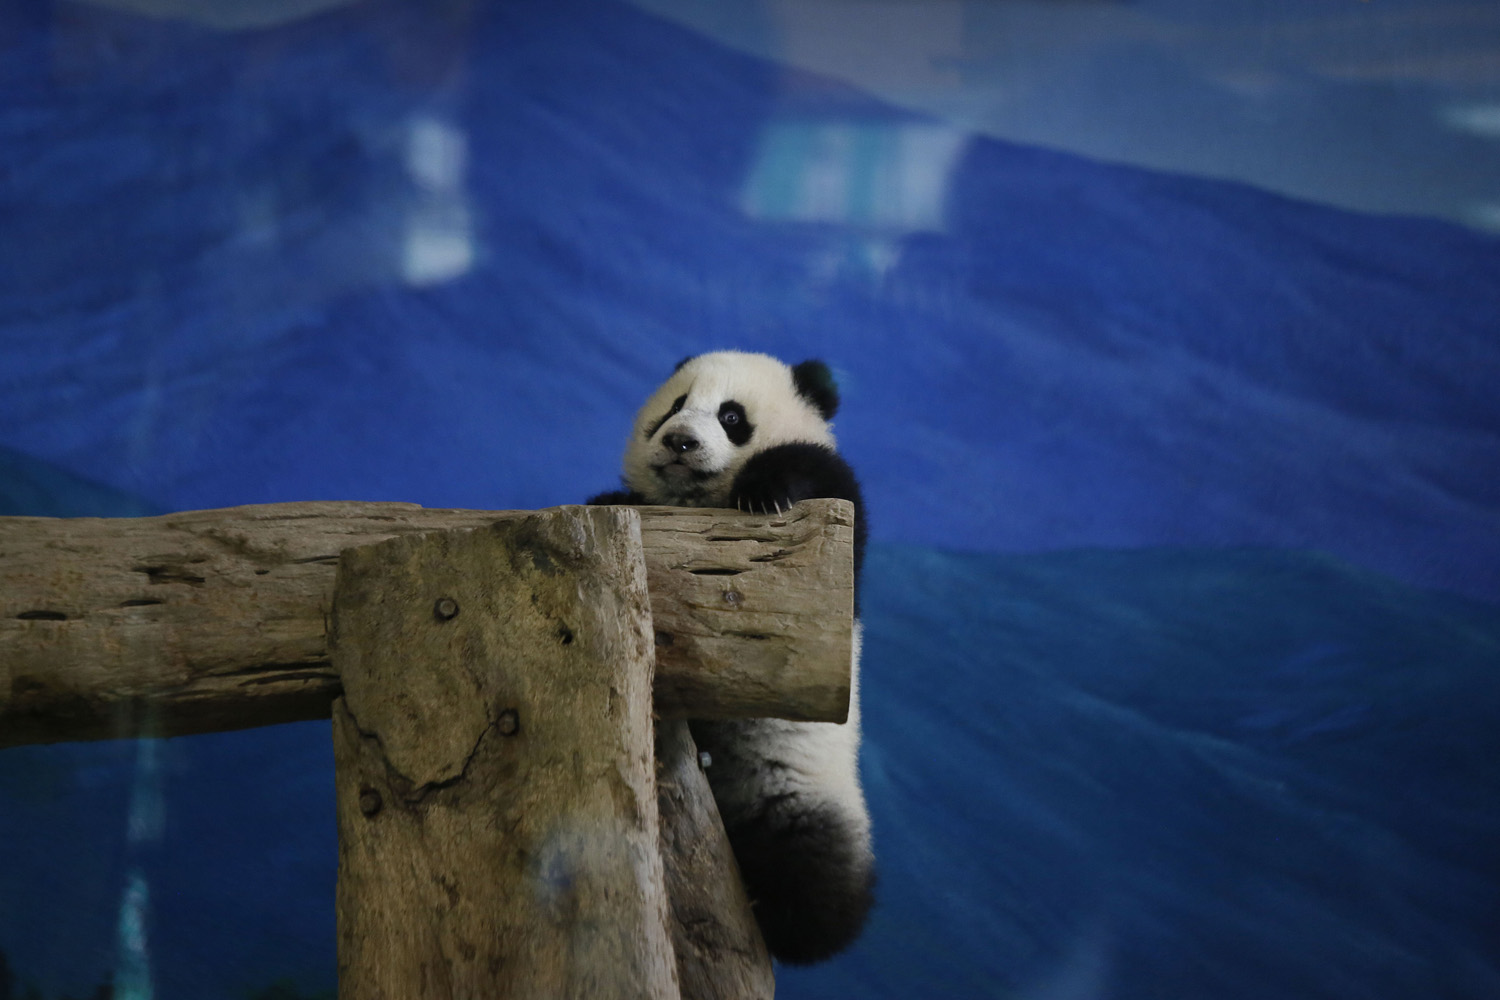 Jan. 6, 2014. Taiwan's six-month-old panda cub Yuan Zai hangs precariously from logs as she is viewed by the public for the first time at the Taipei Zoo in Taipei, Taiwan.